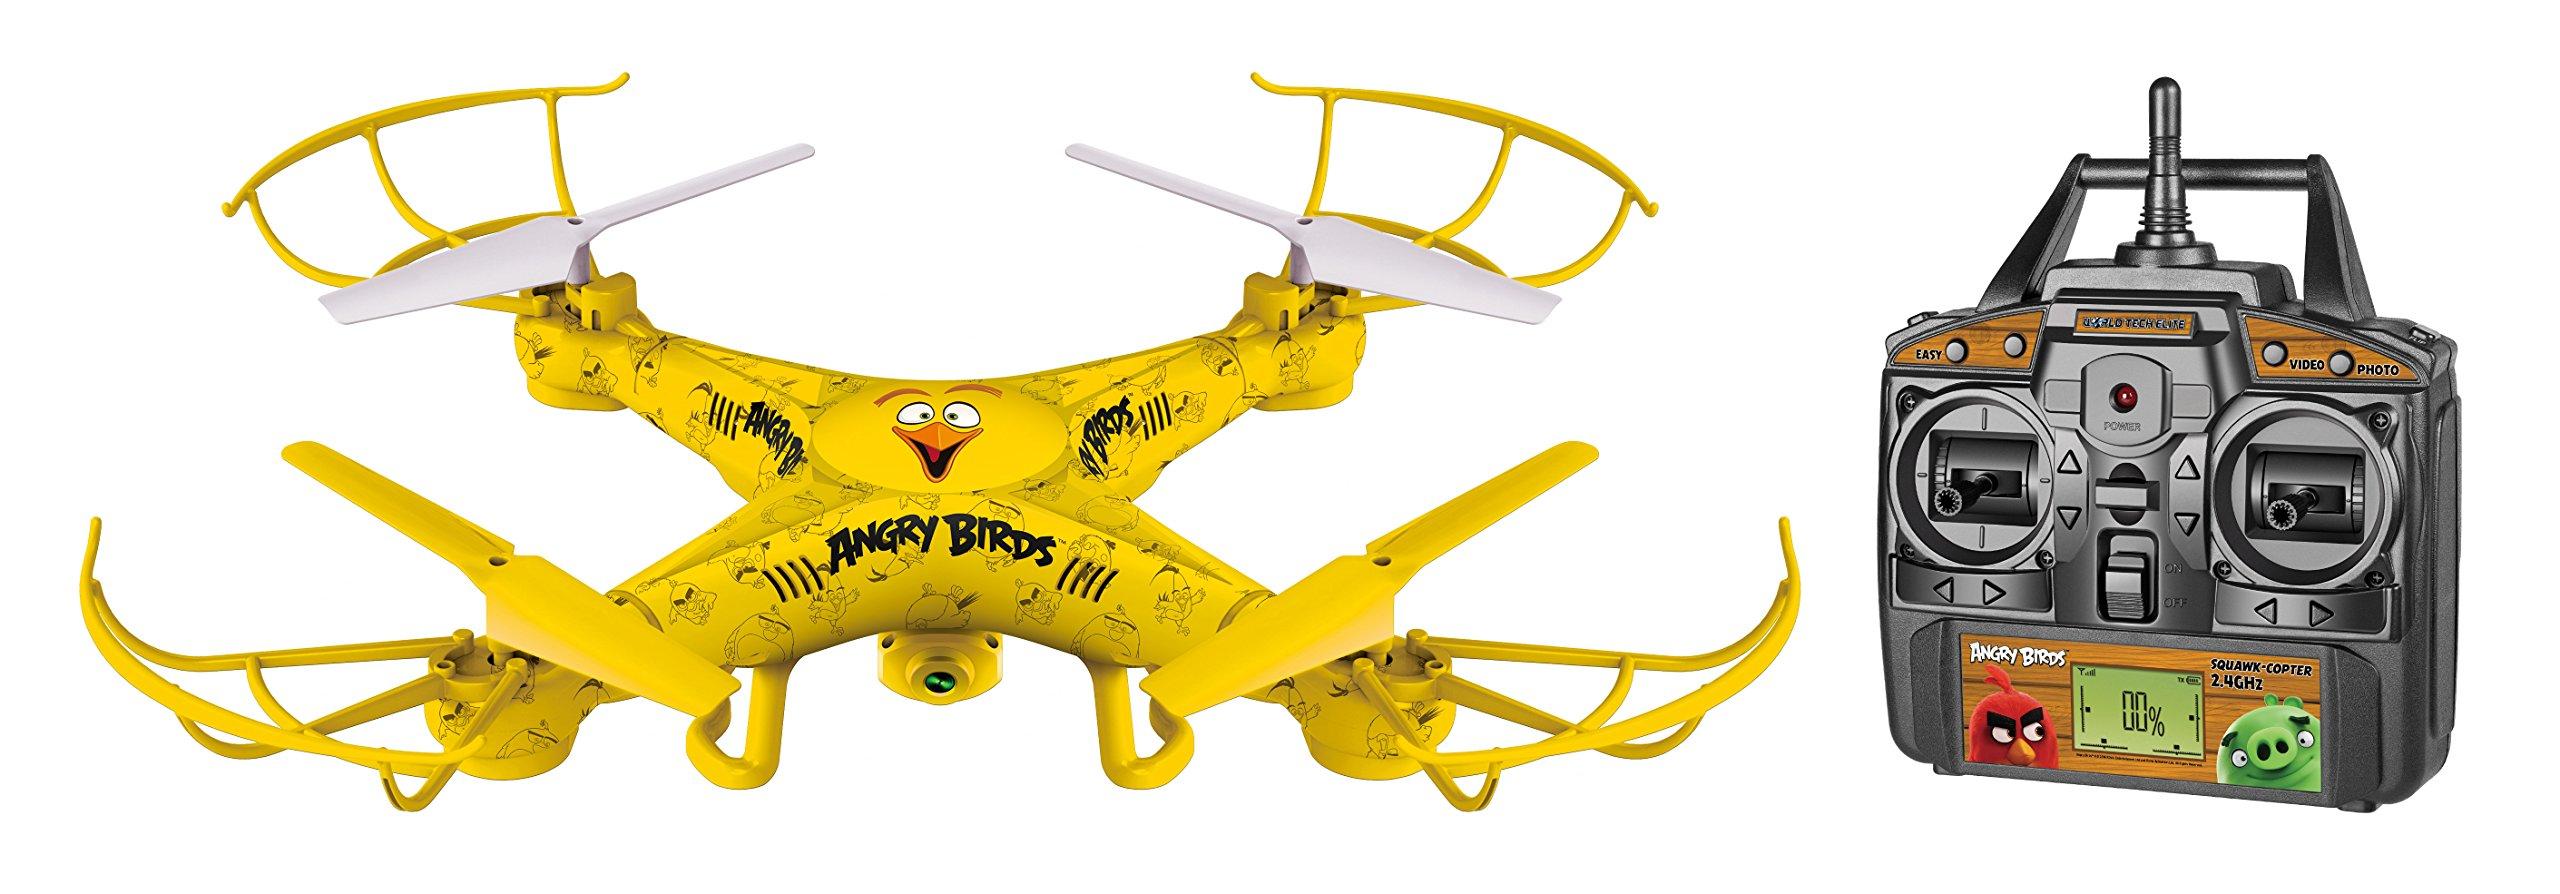 World Tech Toys Angry Birds Licensed Squak Copter CHUCK Camera Drone 2.4GHz 4.5CH Picture/Video Camera RC Quadcopter, Yellow, 22 x 4 x 14.5